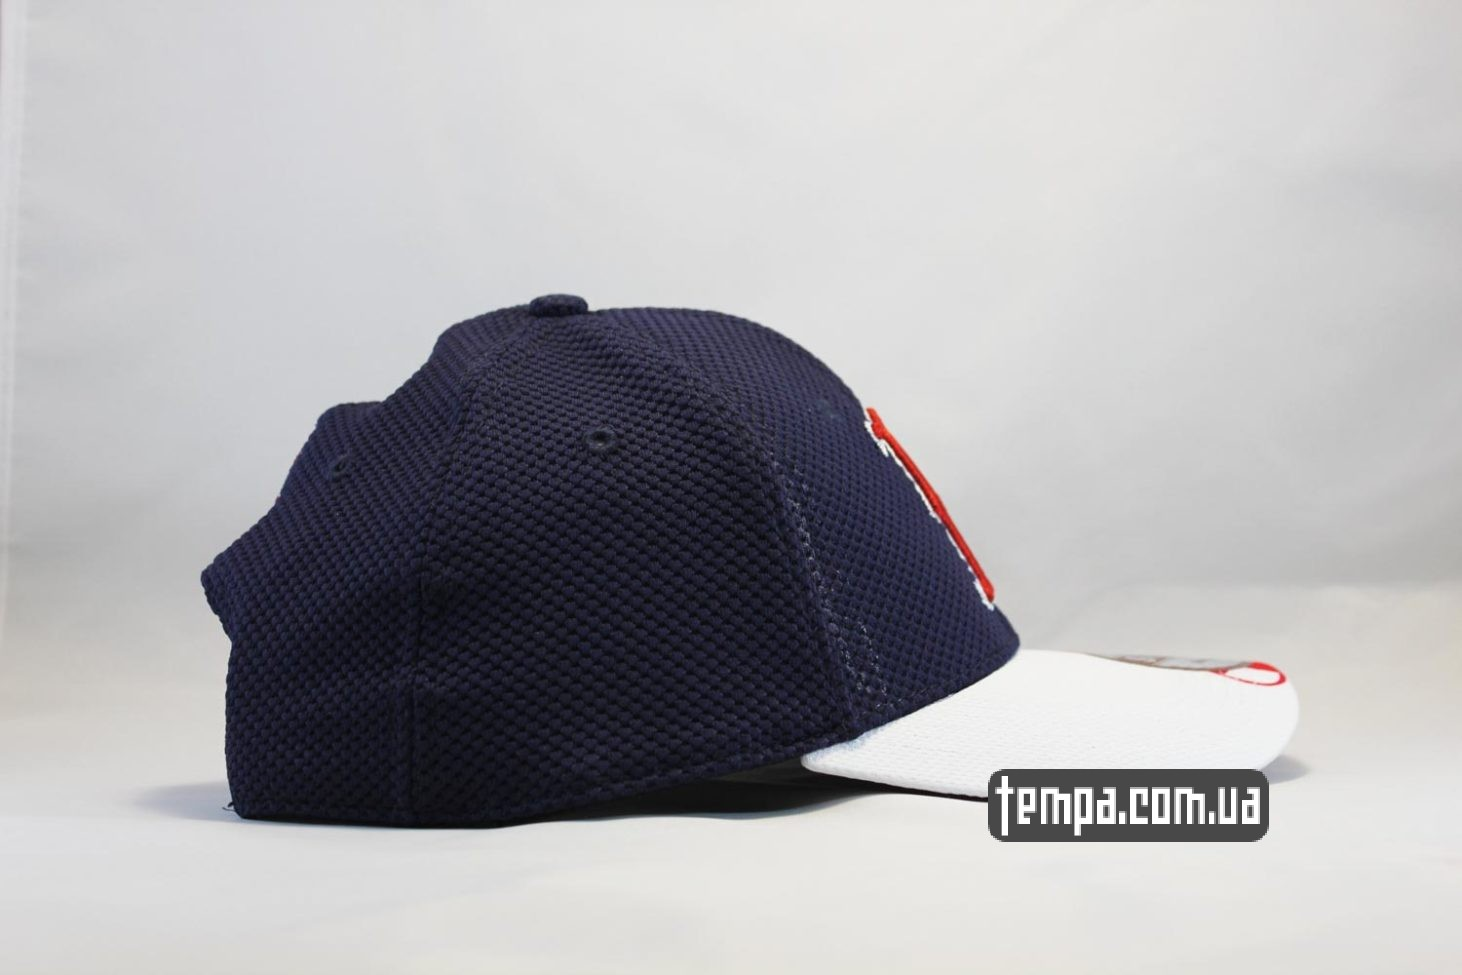 настоящая американская купить кепка бейсболка Boston Red Sox snabpack в сеточку